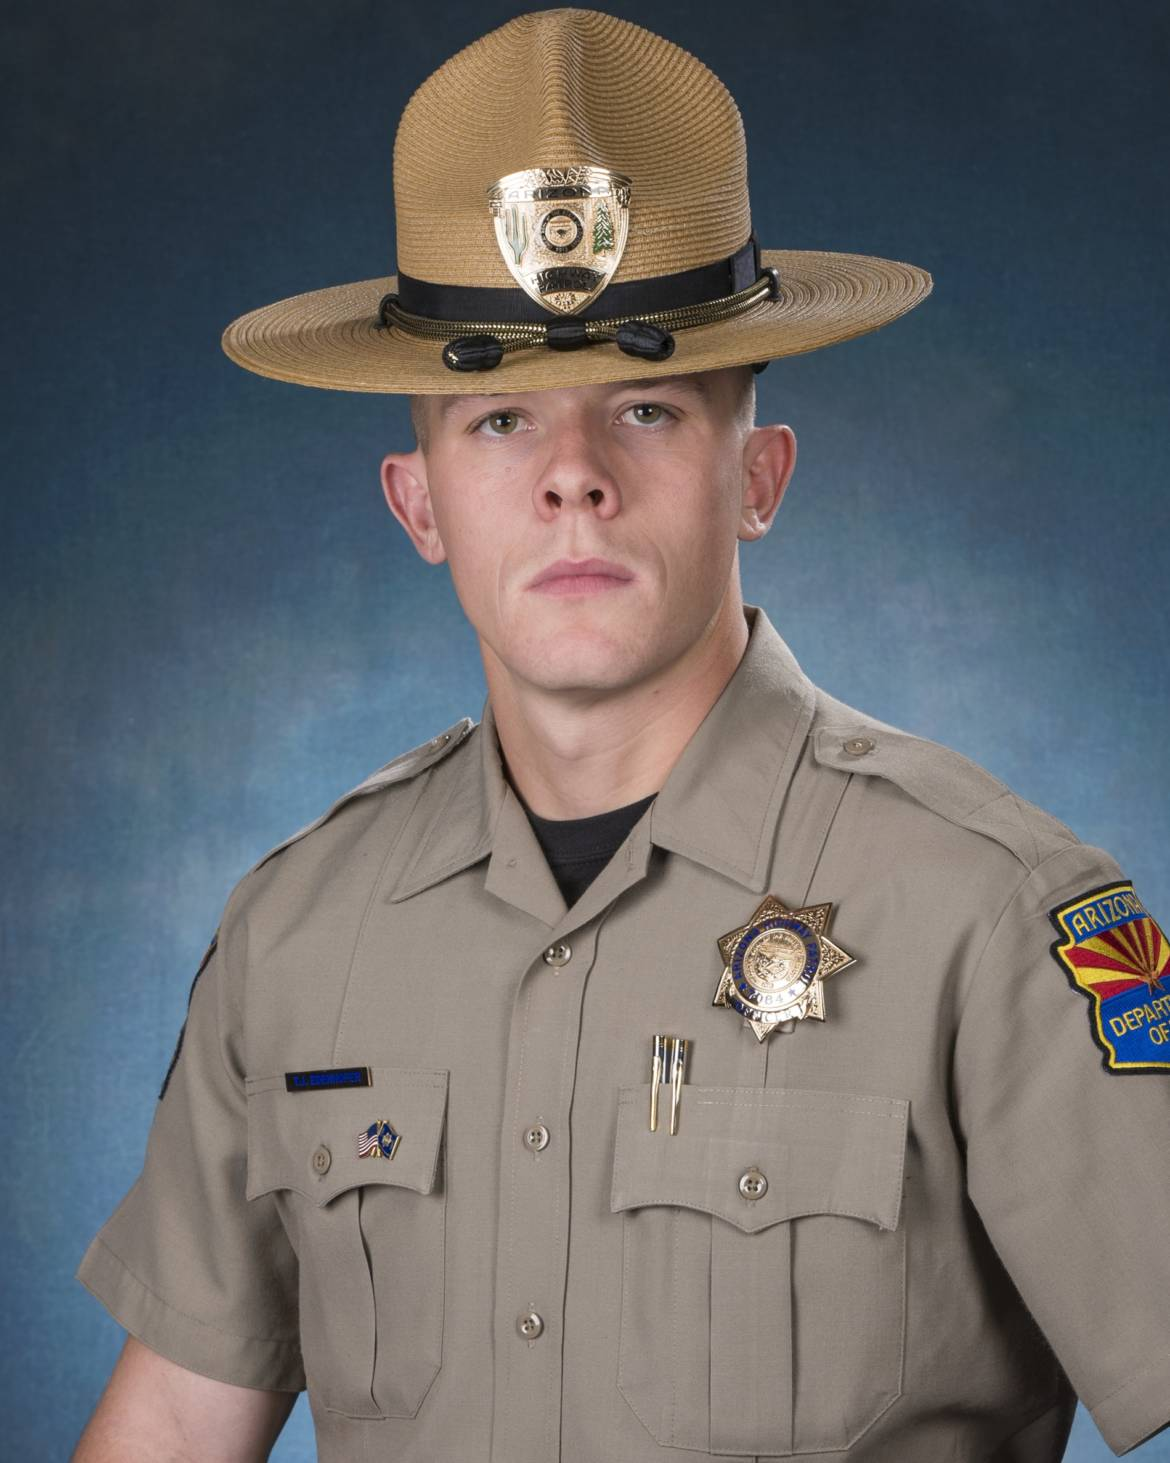 Trooper Tyler James Edenhofer